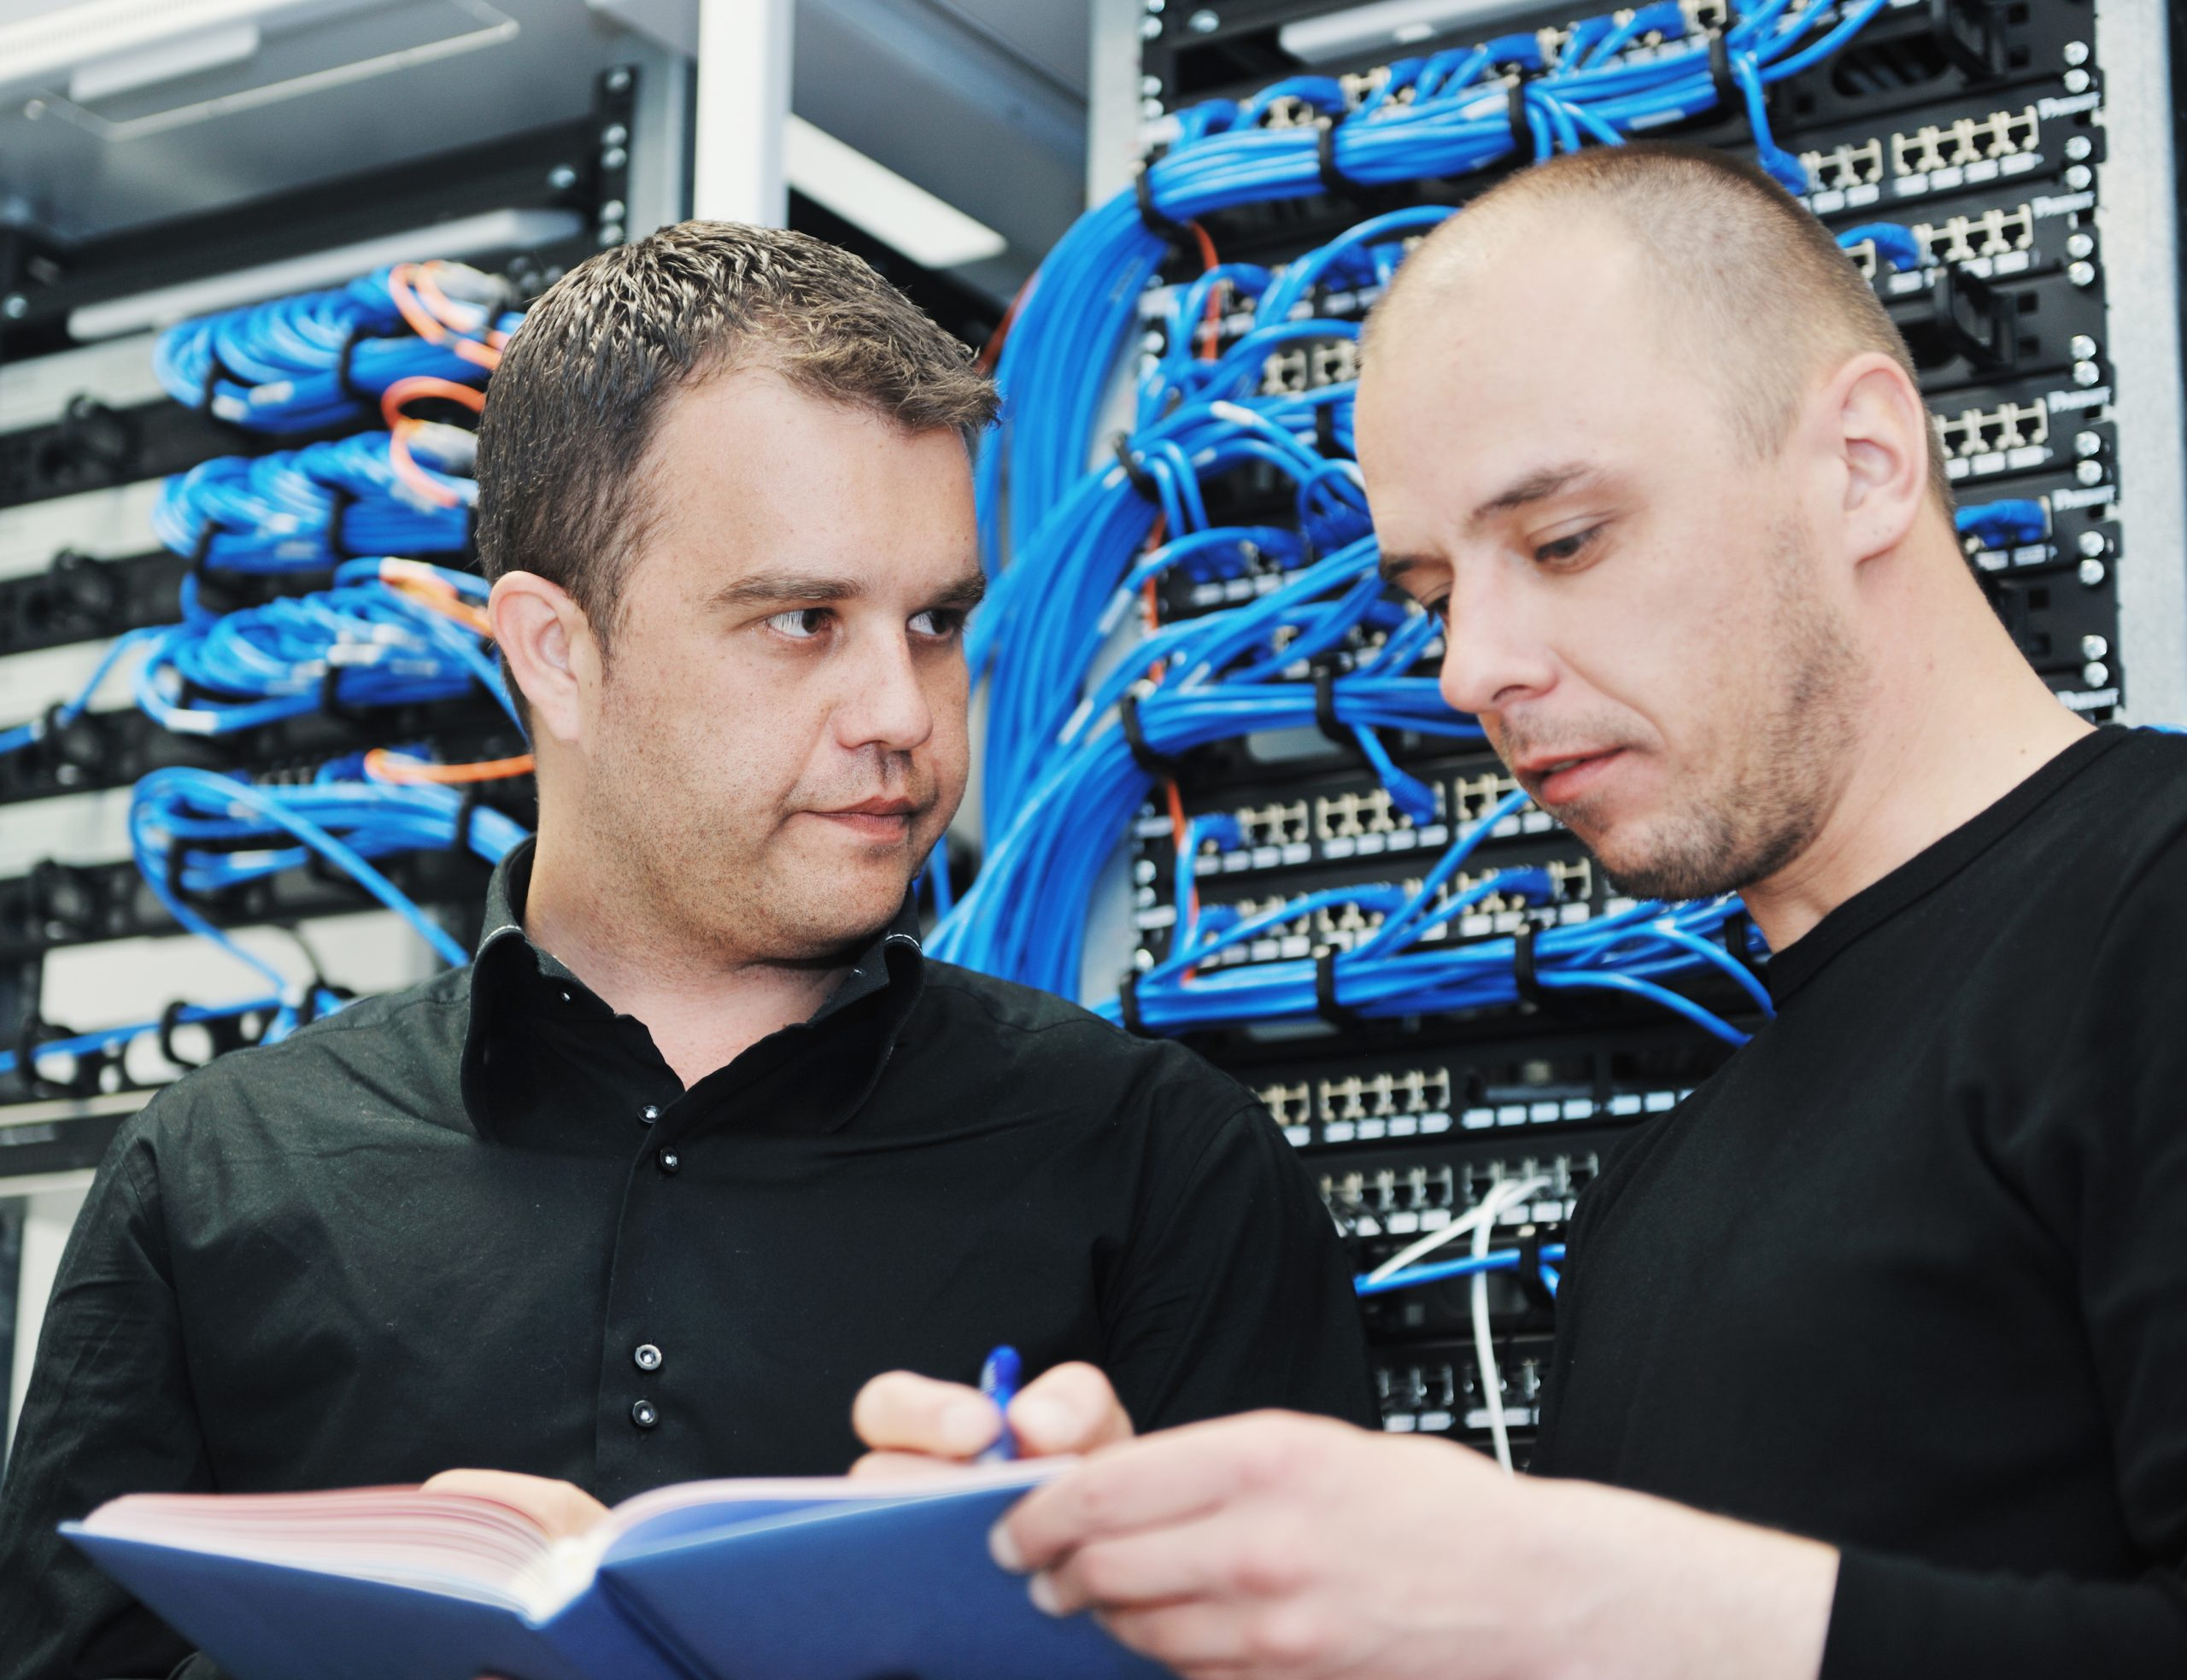 Network cabling installers